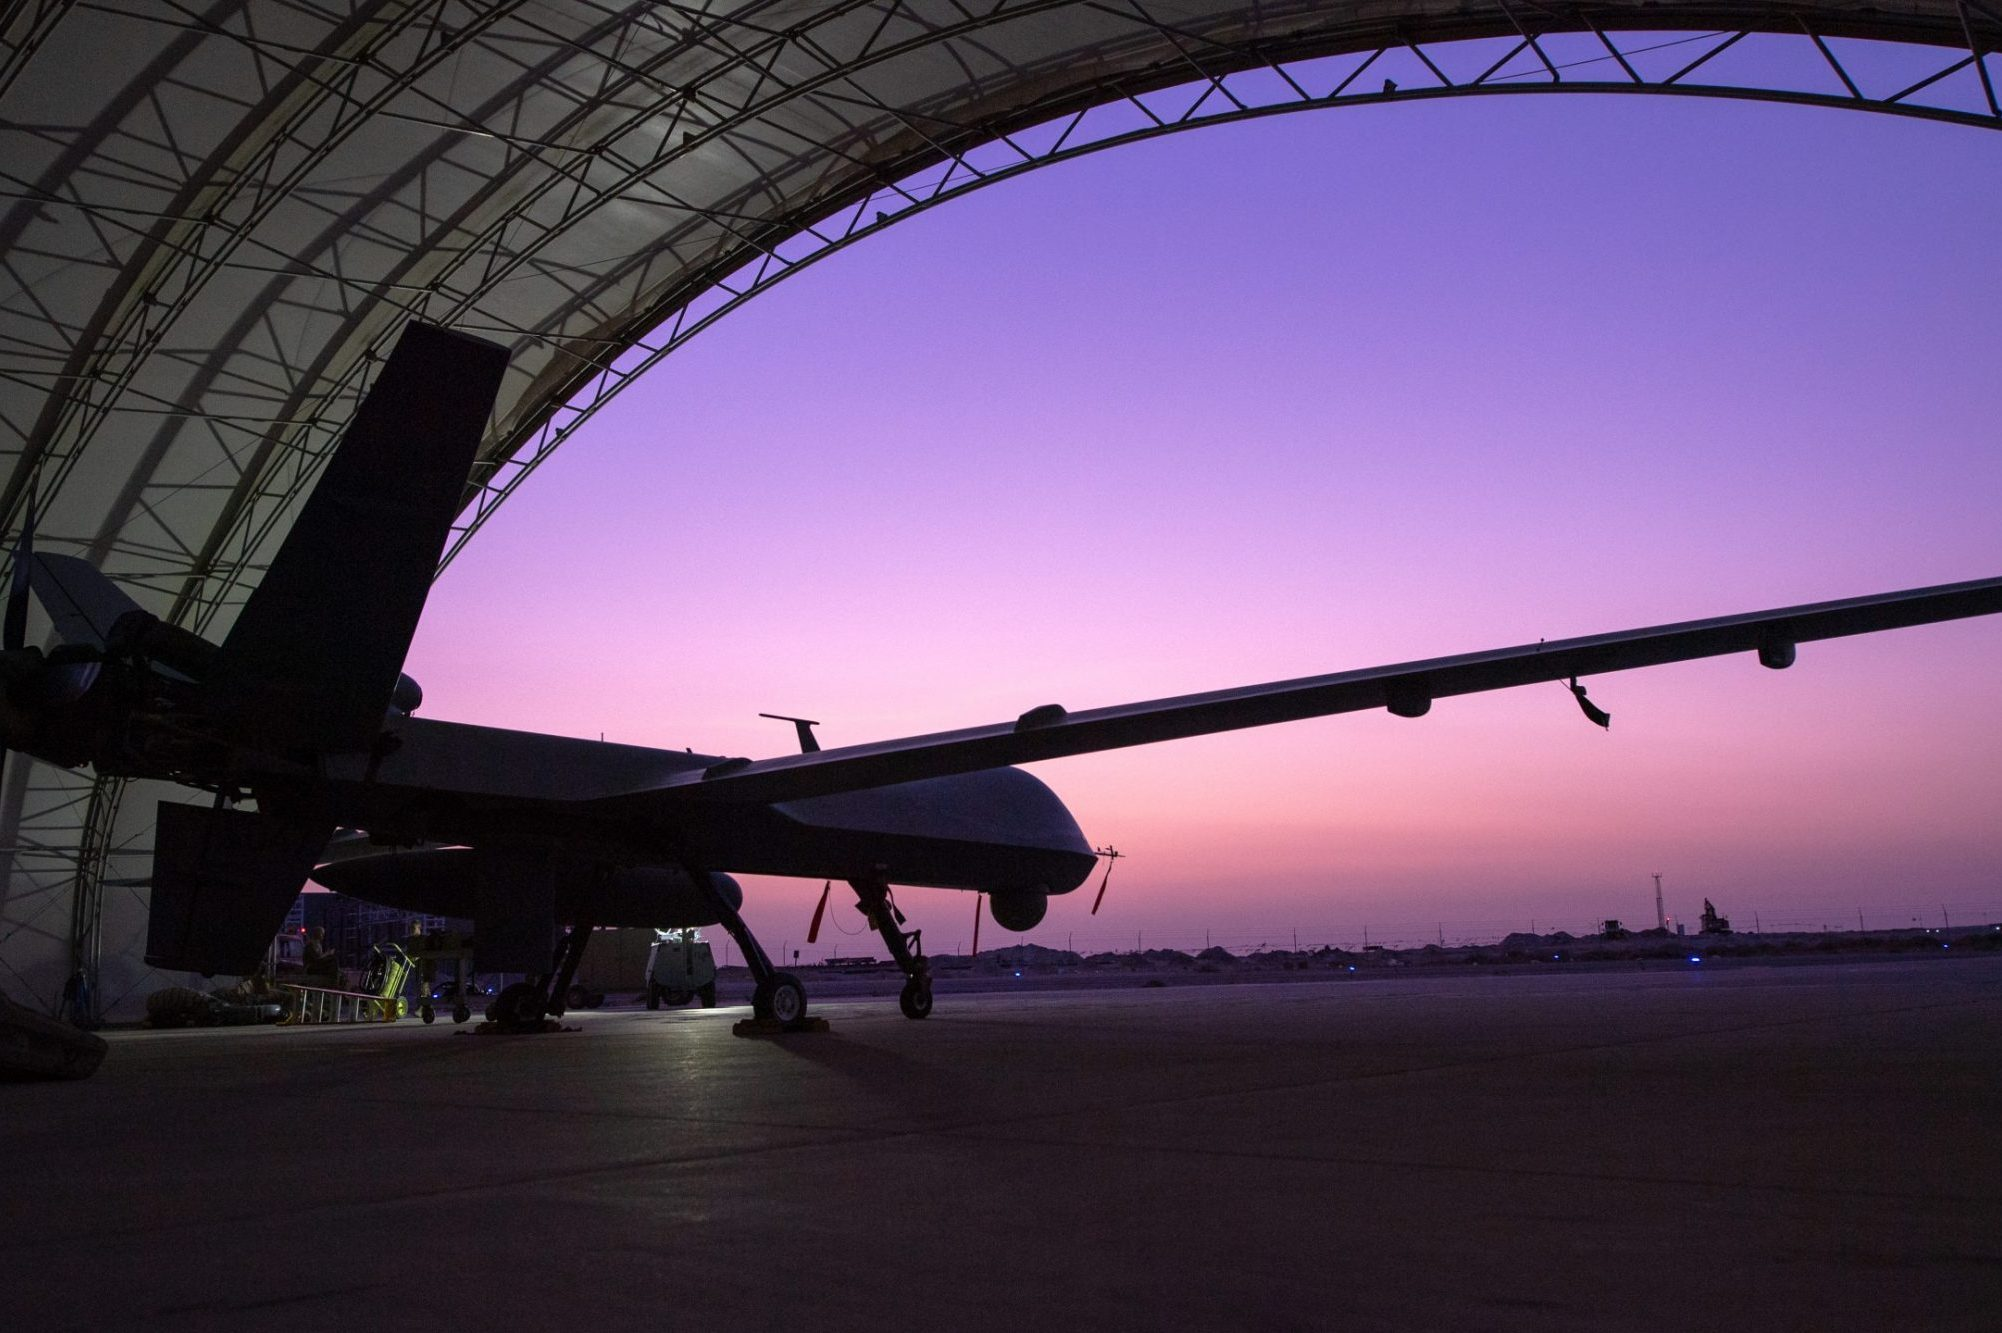 A U.S. Air Force MQ-9 Reaper remotely piloted aircraft awaits an engine test prior to Intelligence, Surveillance, and Reconnaissance operations at Ali Al Salem Air Base, Kuwait, July 23, 2019. Reaper's are maintained, launched and recovered from deployed locations, but are remotely operated from bases in the United States during ISR operations around the world. (U.S. Air Force Photo by Tech. Sgt. Michael Mason)